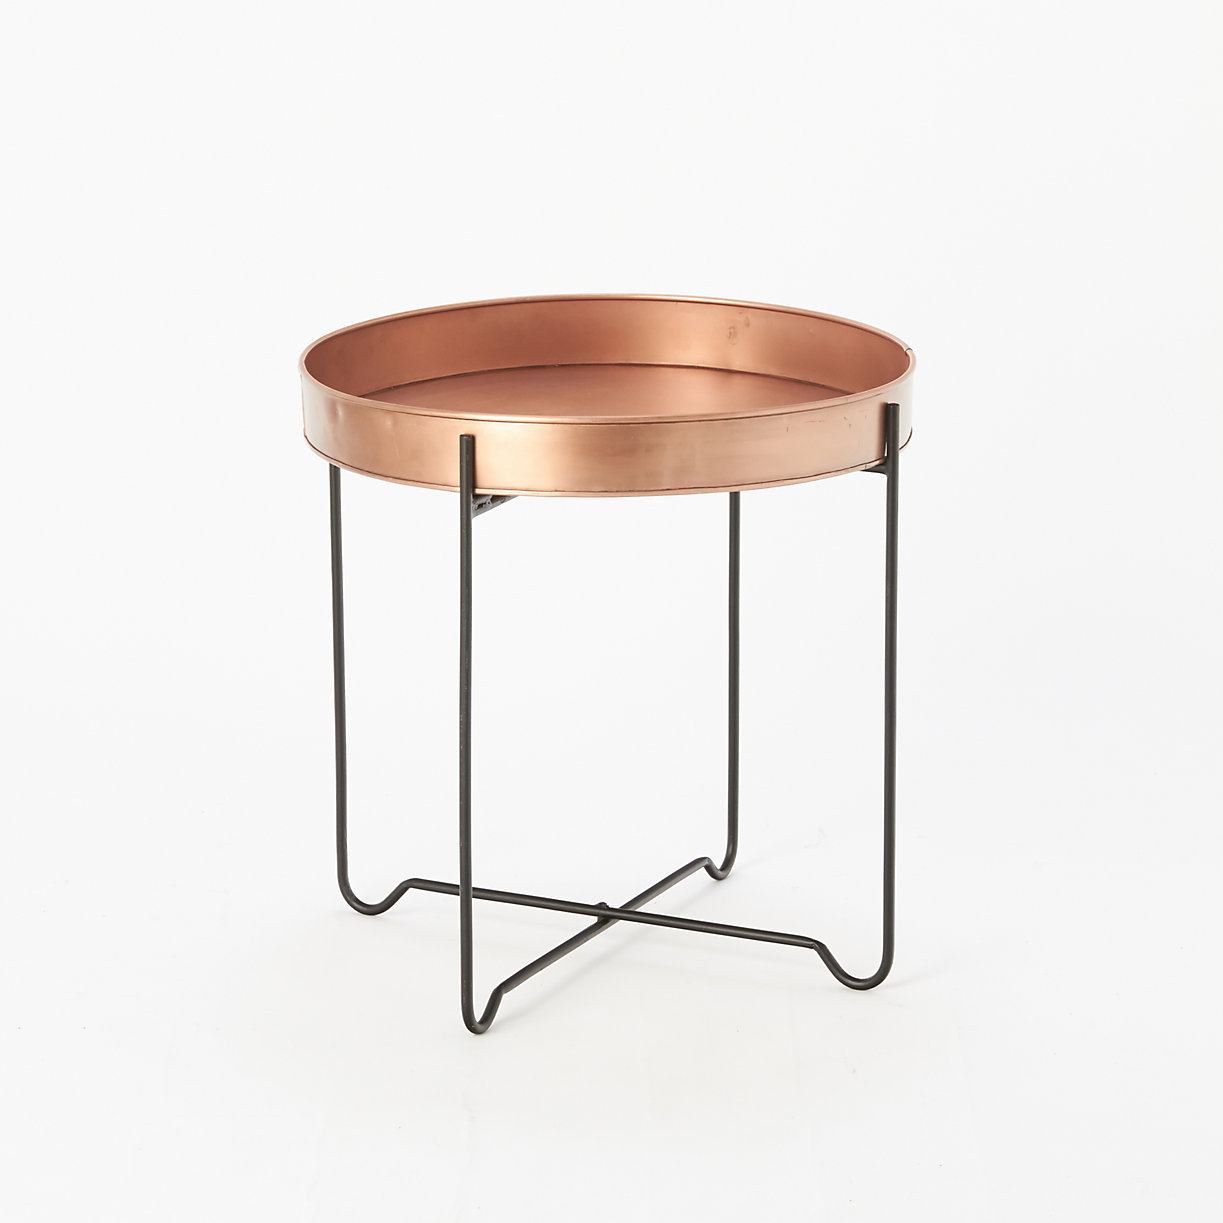 Copper Tray End Table  Terrain. Cargo Drawers For Suv. Ashley Furniture Table Lamps. Office Depot 4 Drawer File Cabinet. Fordham Law Help Desk. U Shaped Desk Office Depot. Diy Cheap Desk. Storage Containers With Drawers. Tiny Desks